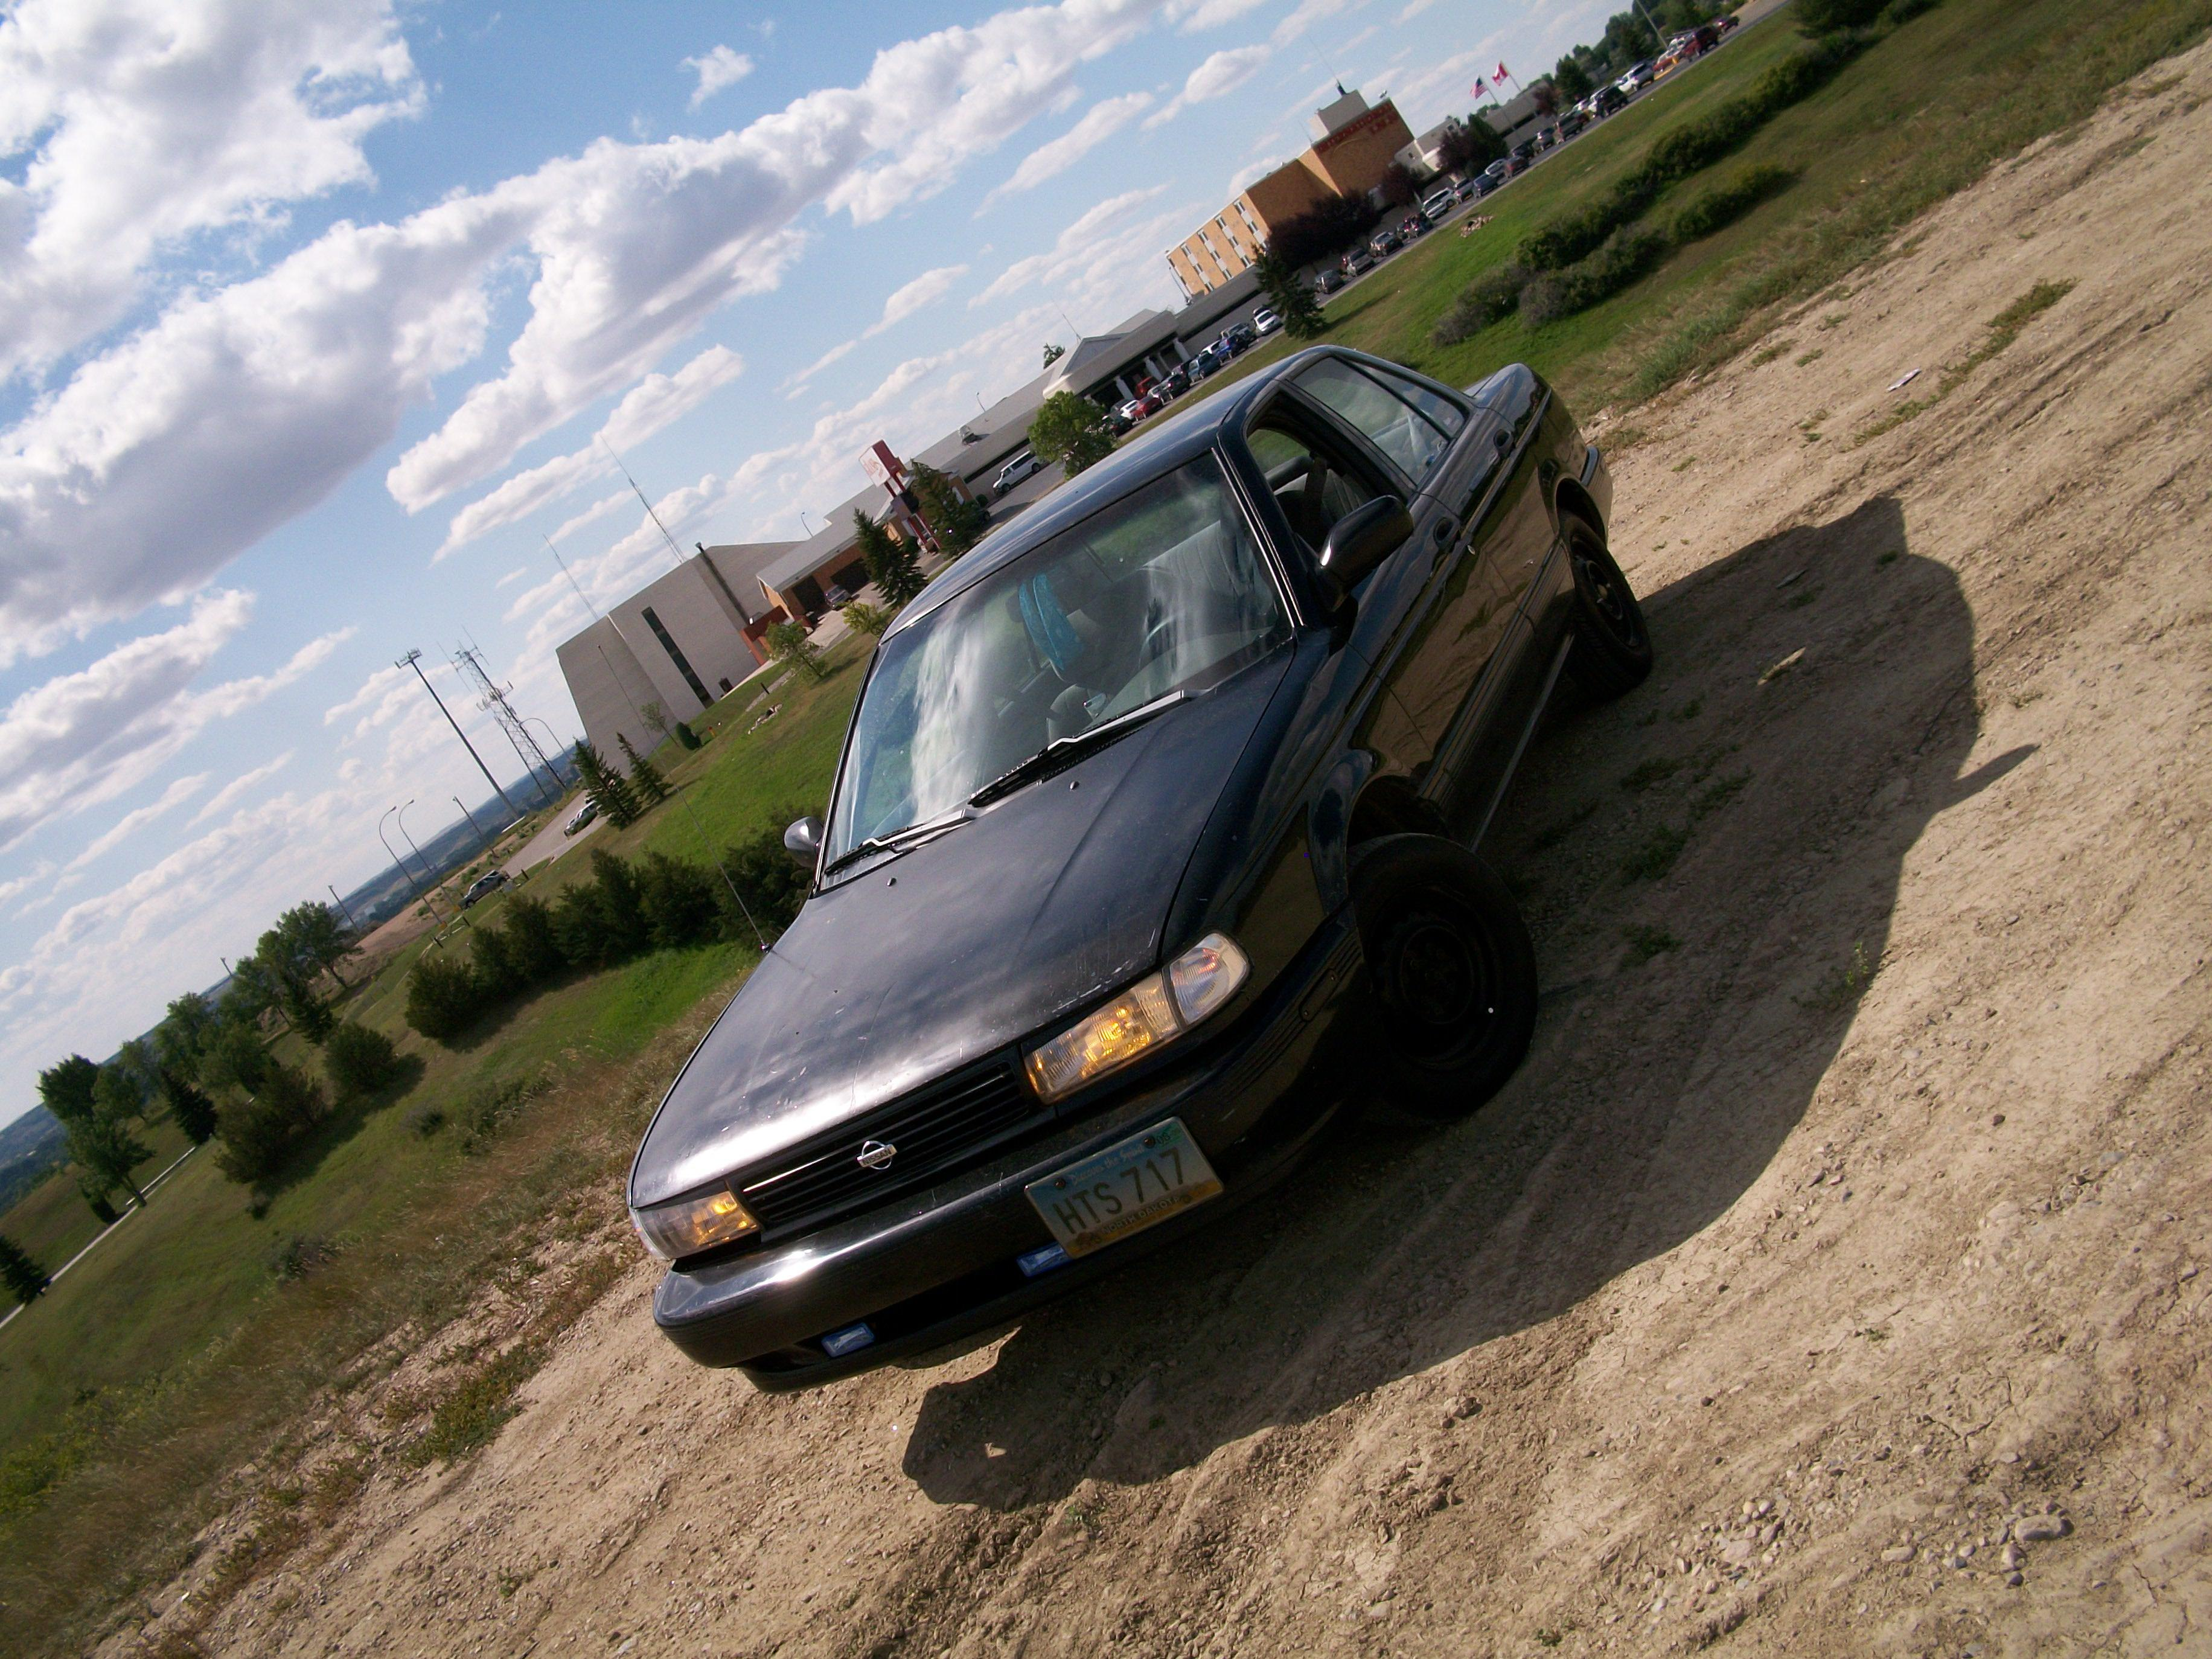 94 sentra xe 39 s 1994 nissan sentra page 2 in minot nd. Black Bedroom Furniture Sets. Home Design Ideas